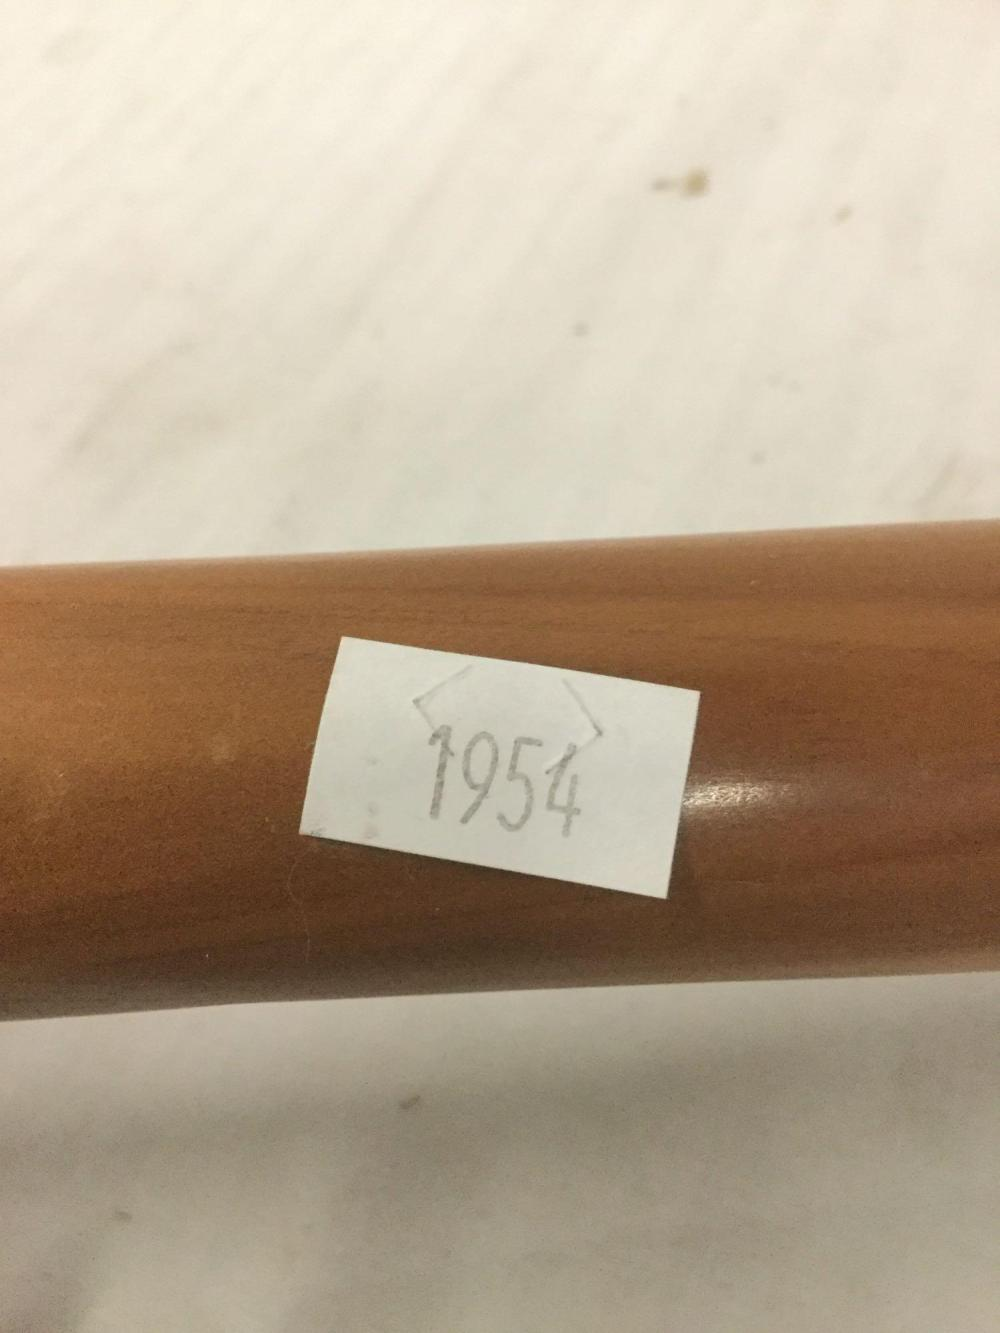 Lot 299: Hand carved Native American Eagle Flute w/ small turquoise inlay - signed Bobby 7794 Nava Hopi